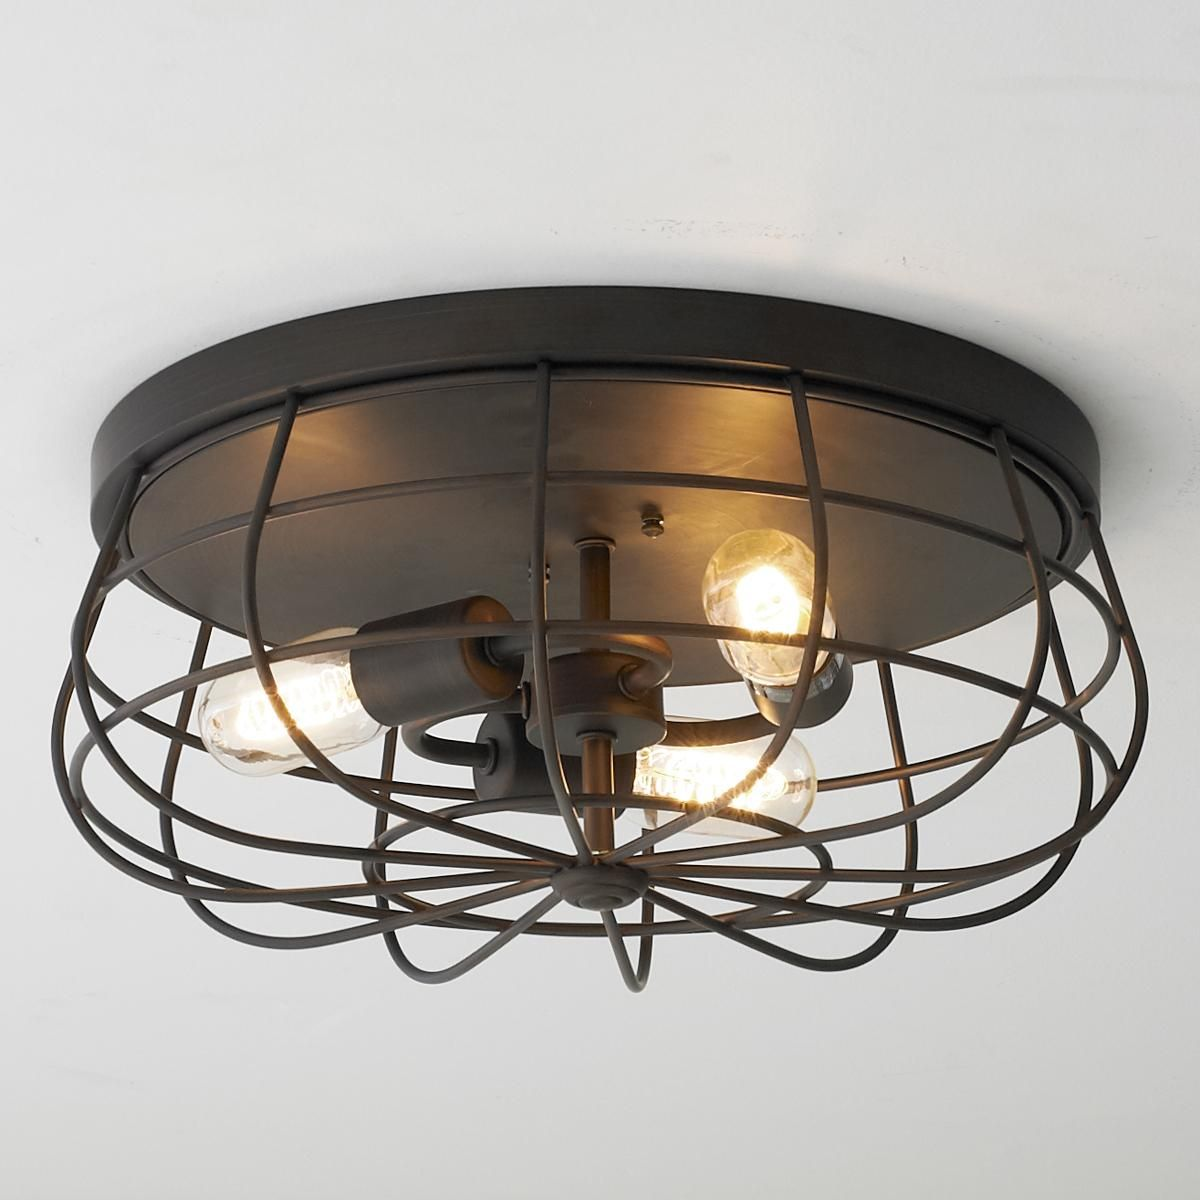 Industrial Cage Ceiling Light Cage Ceiling Light Low Ceiling Lighting Industrial Ceiling Lights